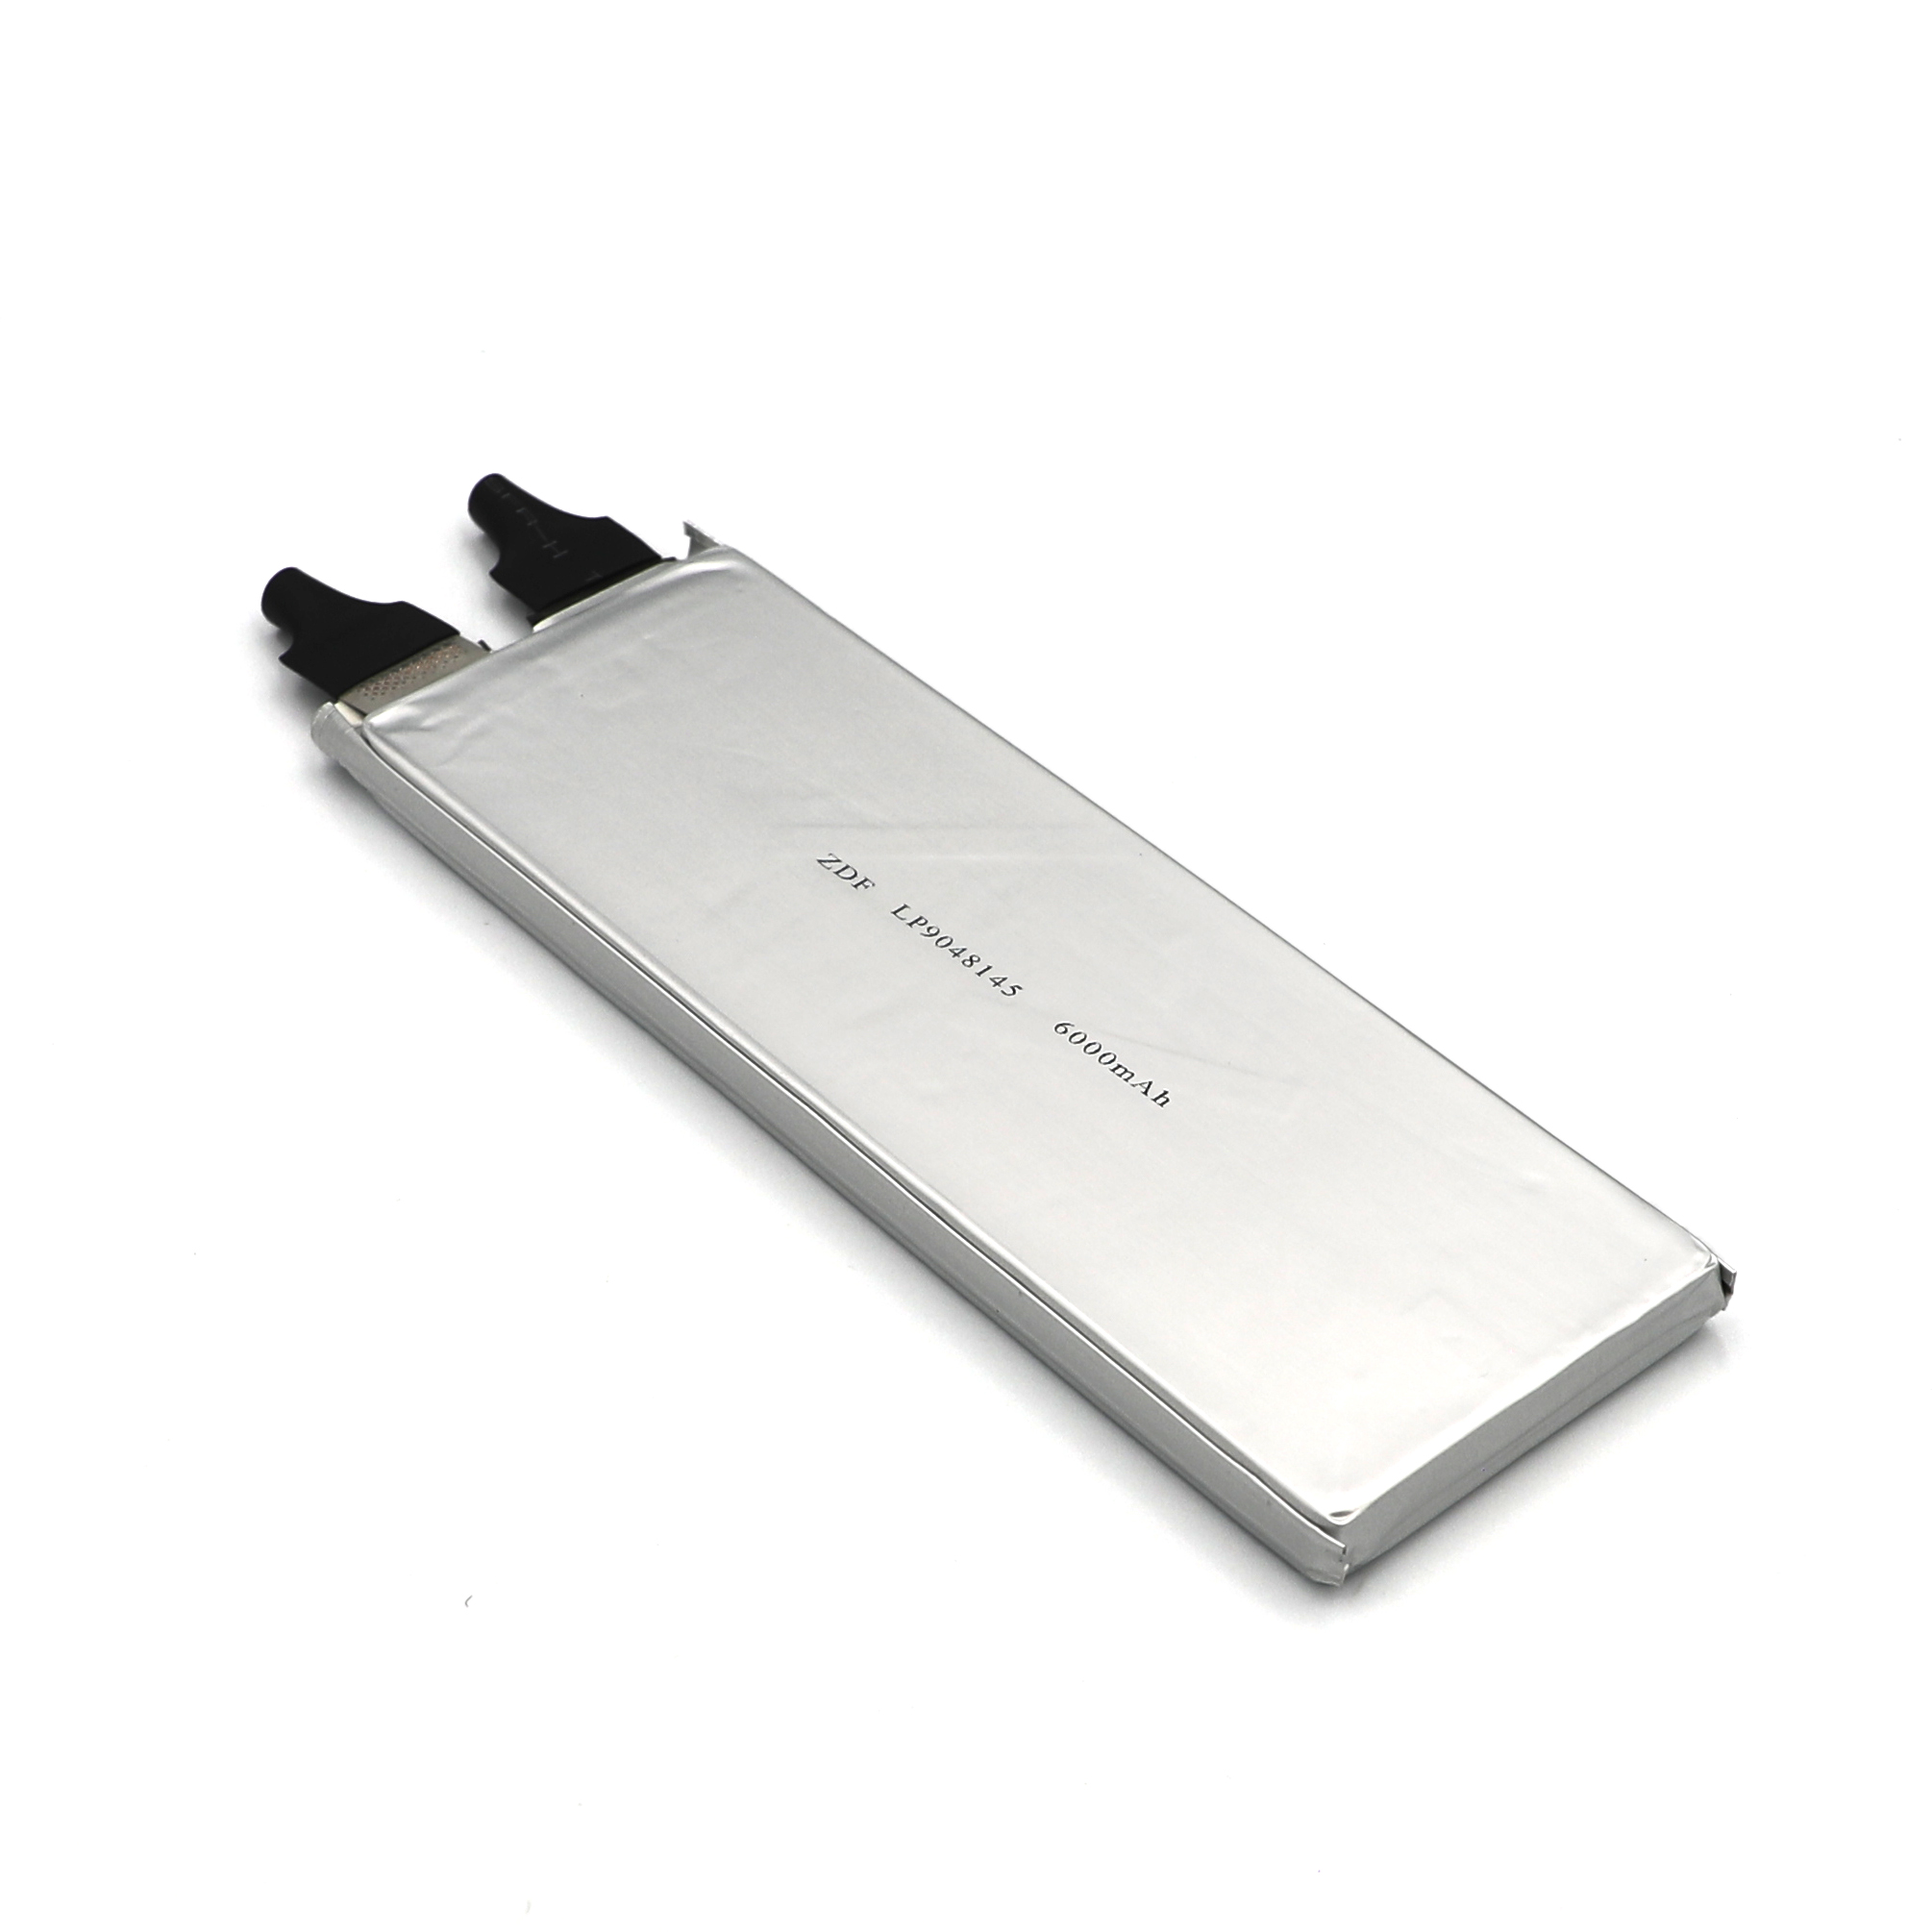 ZDF LP9542126 <font><b>3.7V</b></font> <font><b>lipo</b></font> <font><b>battery</b></font> Cell <font><b>5000mAh</b></font> 50C for RC Car helipoter Multicopter Quadcopter 2S 3S 4S 6S 7.4V 11.1V 14.8V 22.2V image